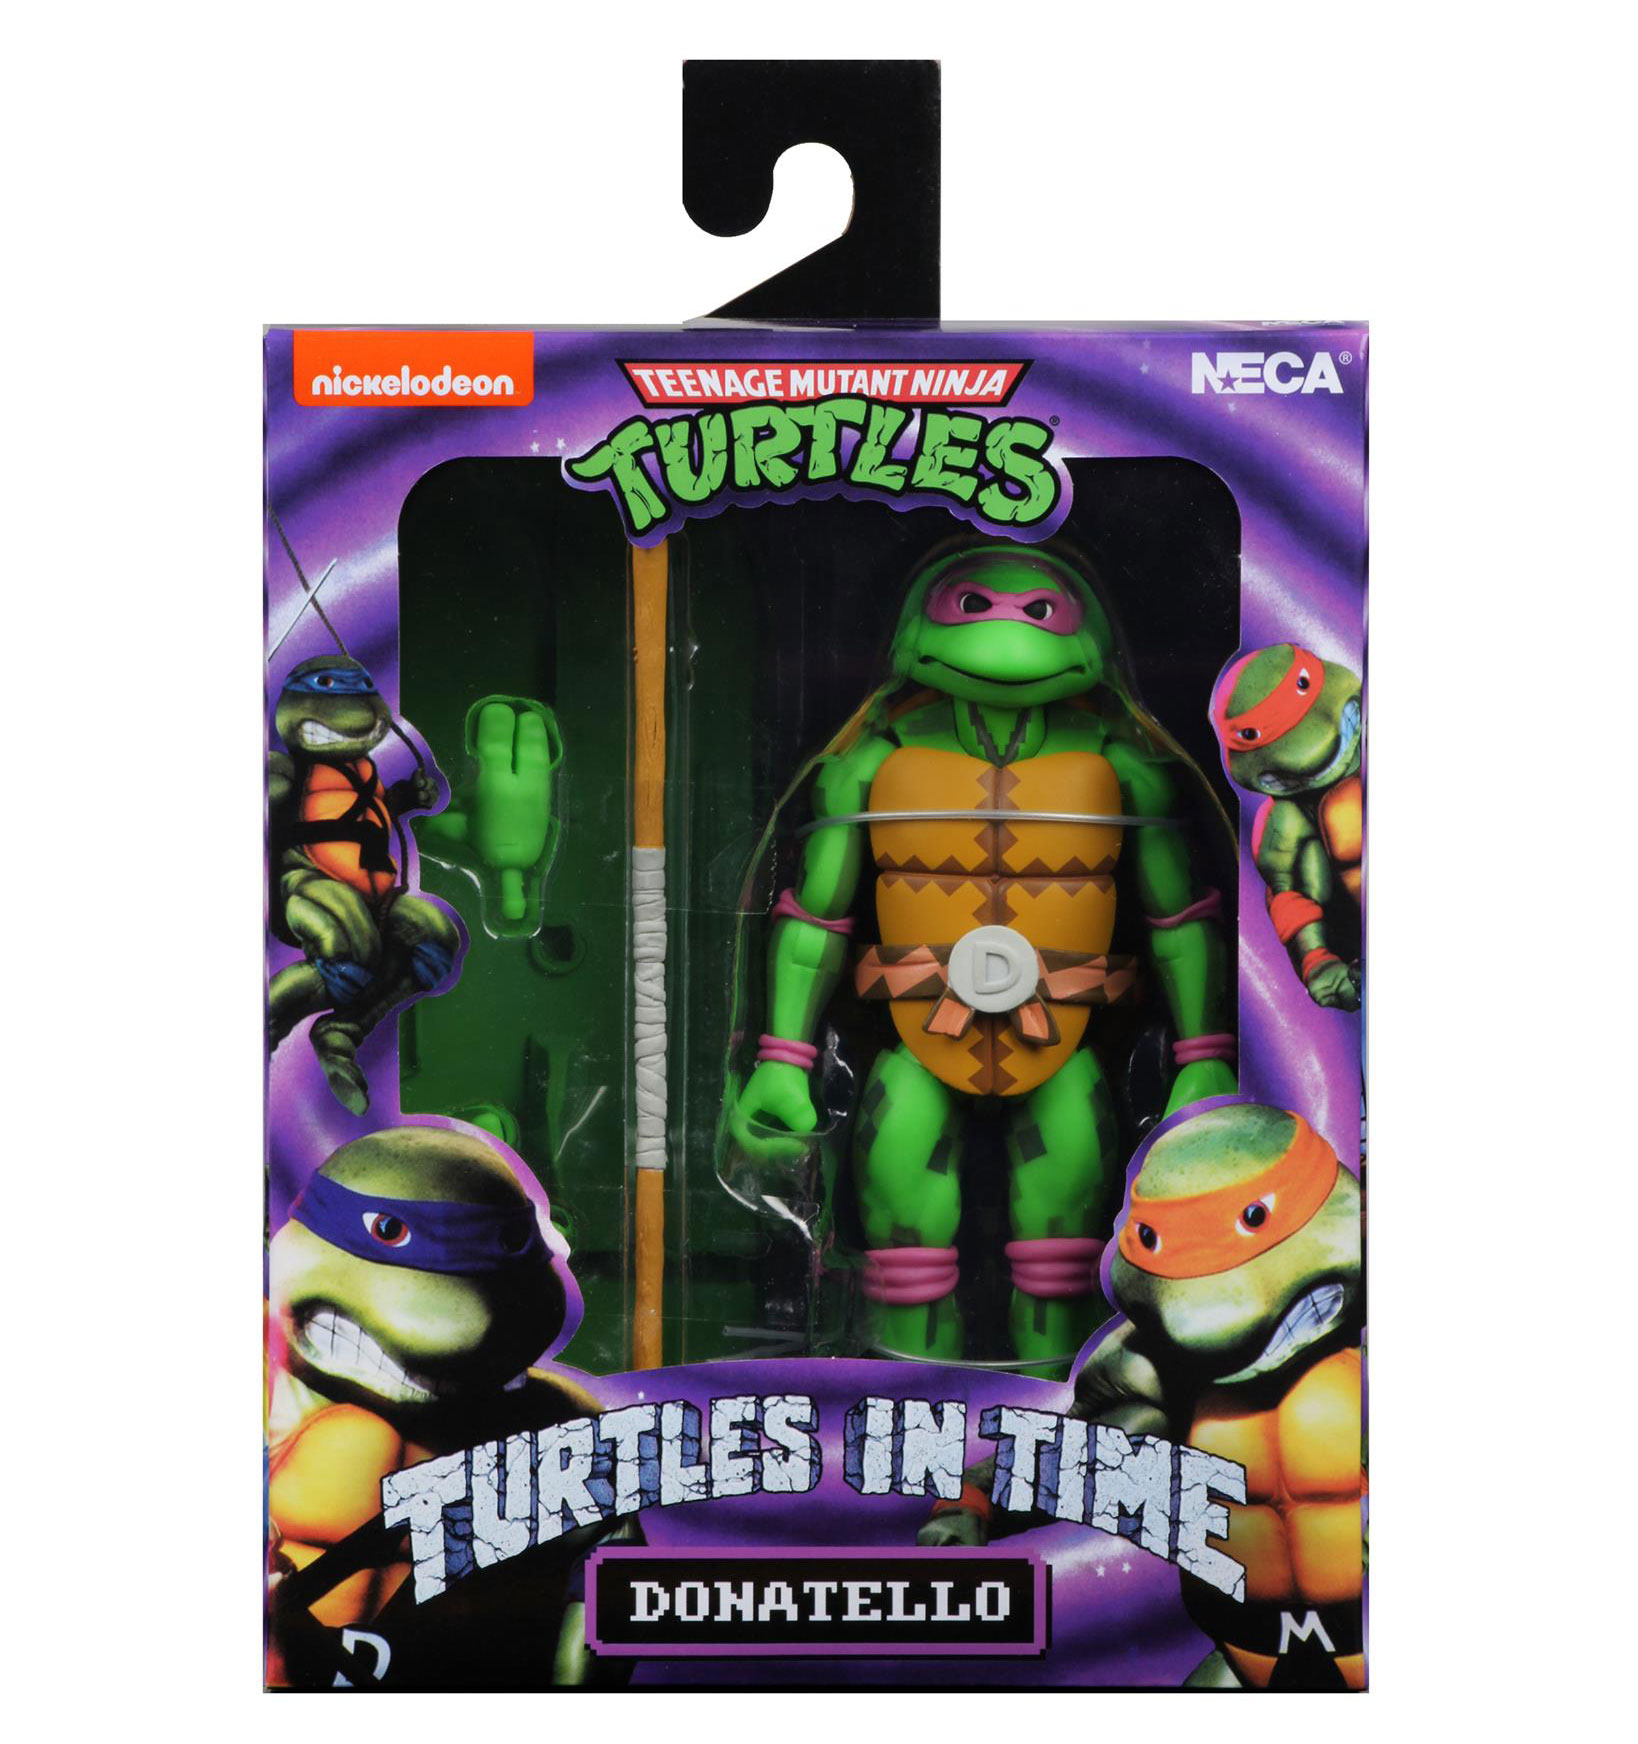 NECA-Turtles-In-Time-Donatello-packaging